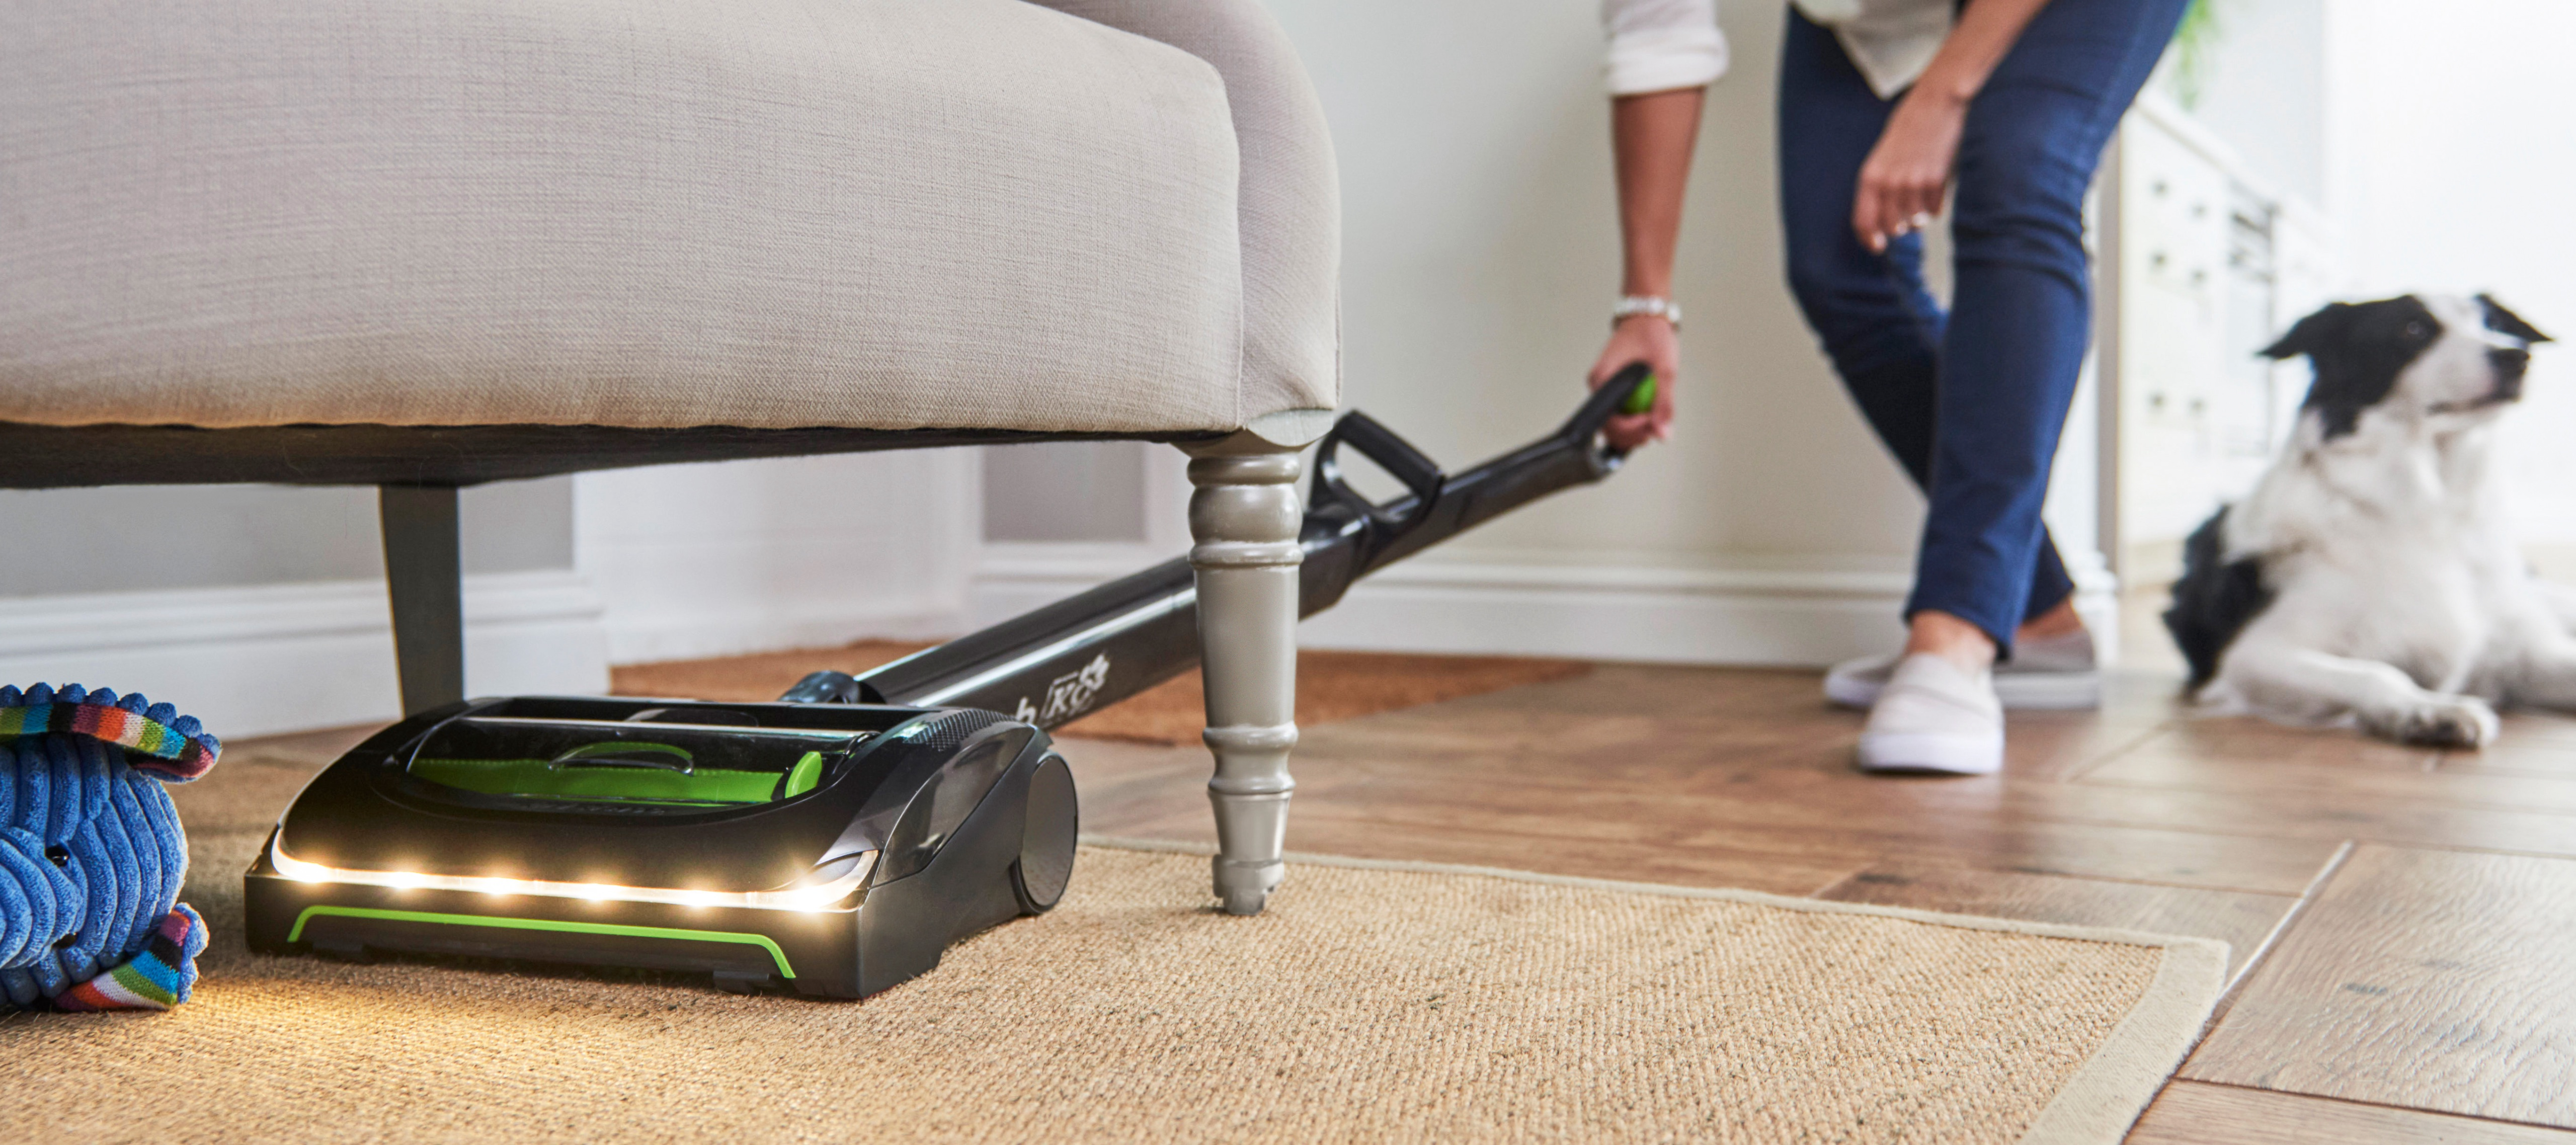 AirRam K9 cordless vacuum cleaner powered brush head long runtime